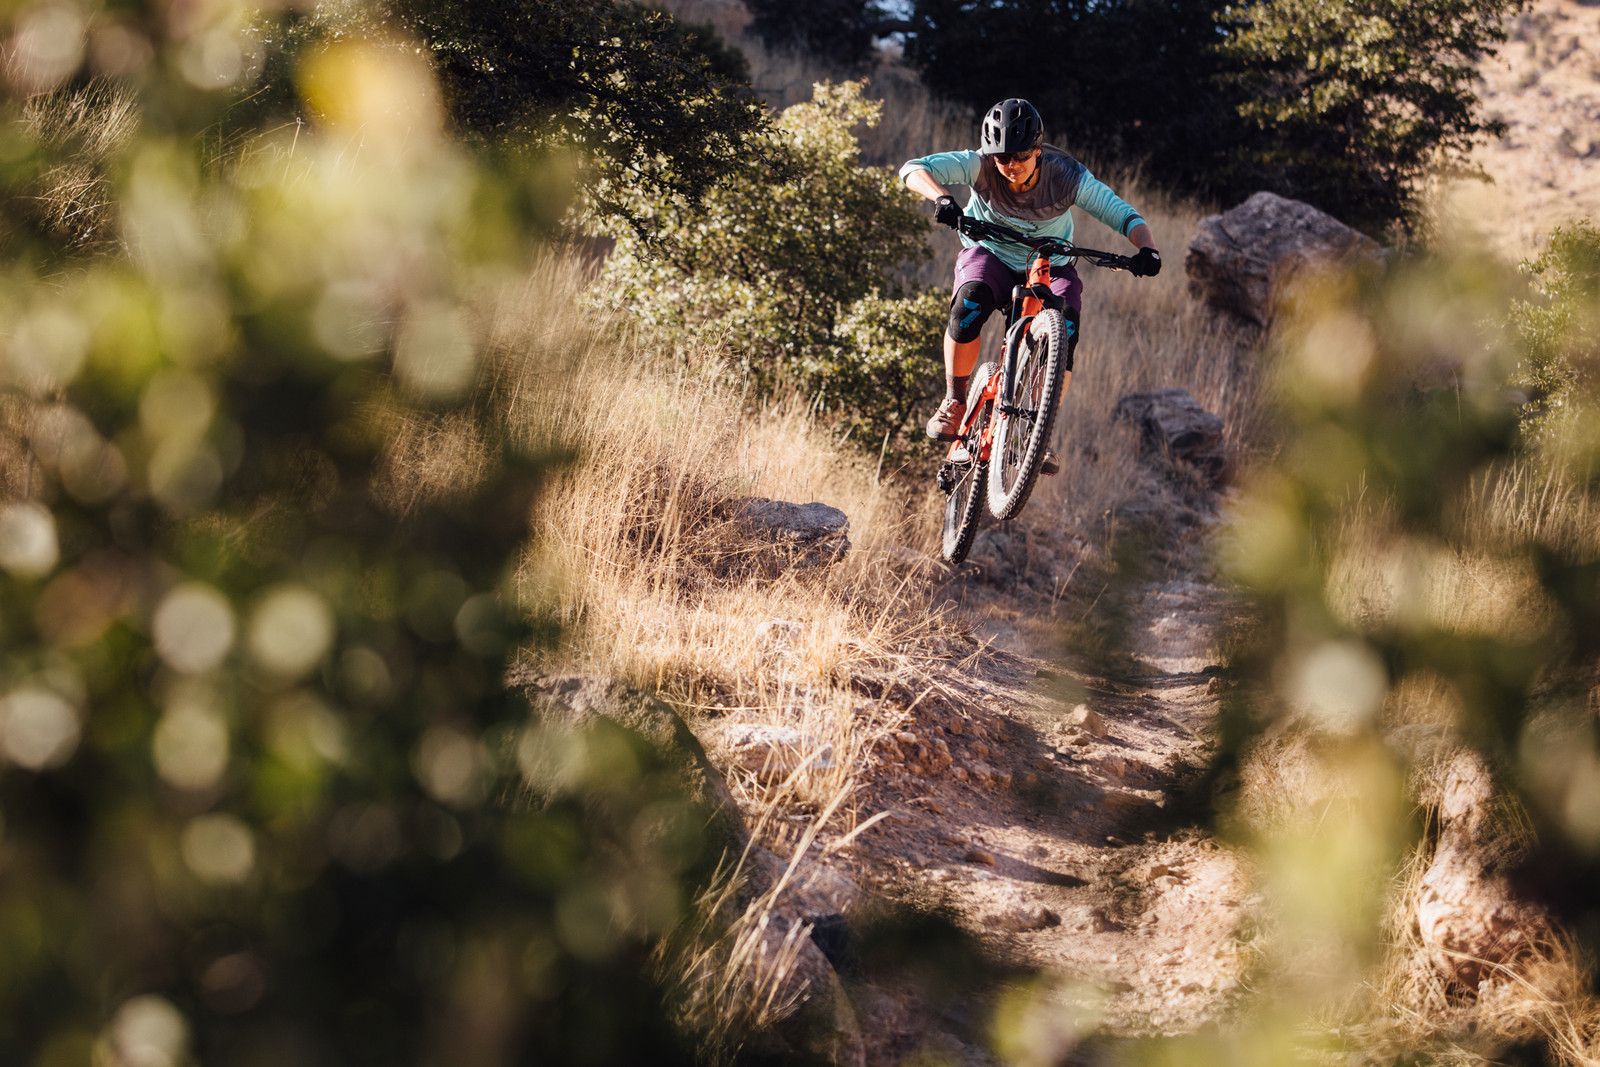 Little Bike Blasting - Just The Bangers - 2017 Vital MTB Test Sessions Photo Gallery - Mountain Biking Pictures - Vital MTB